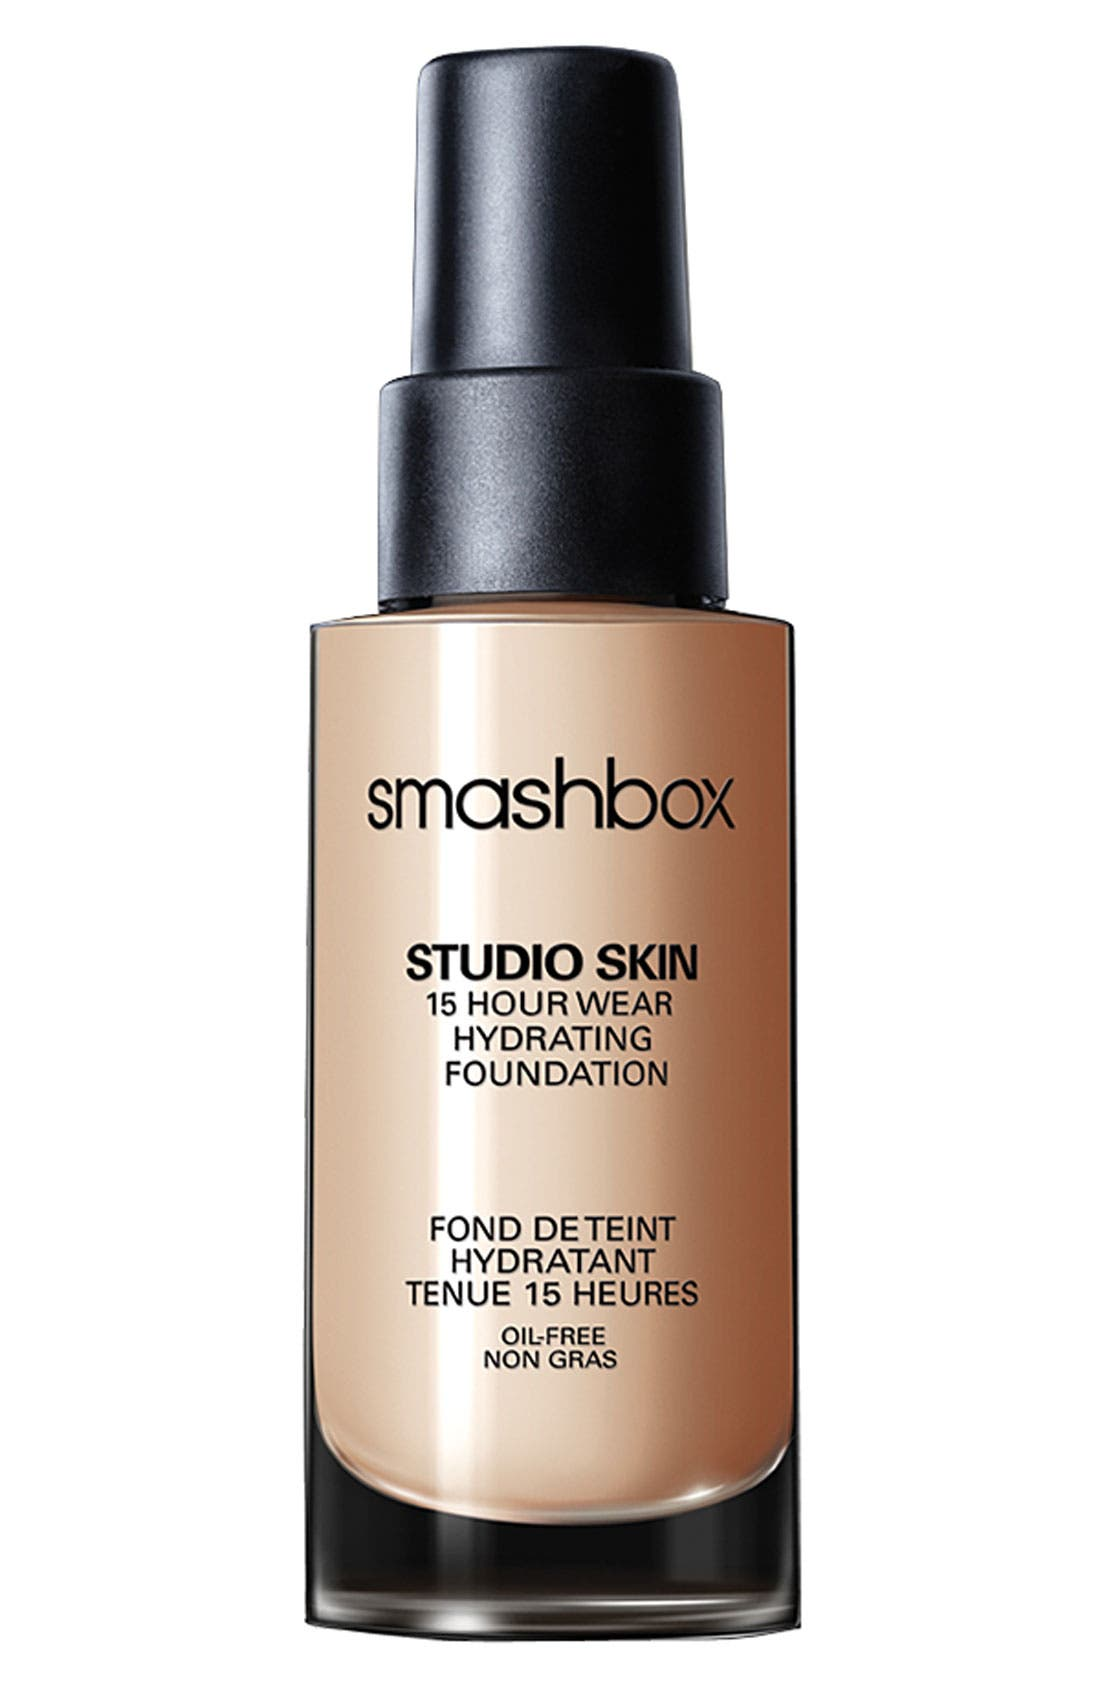 Smashbox Studio Skin 15 Hour Wear Foundation